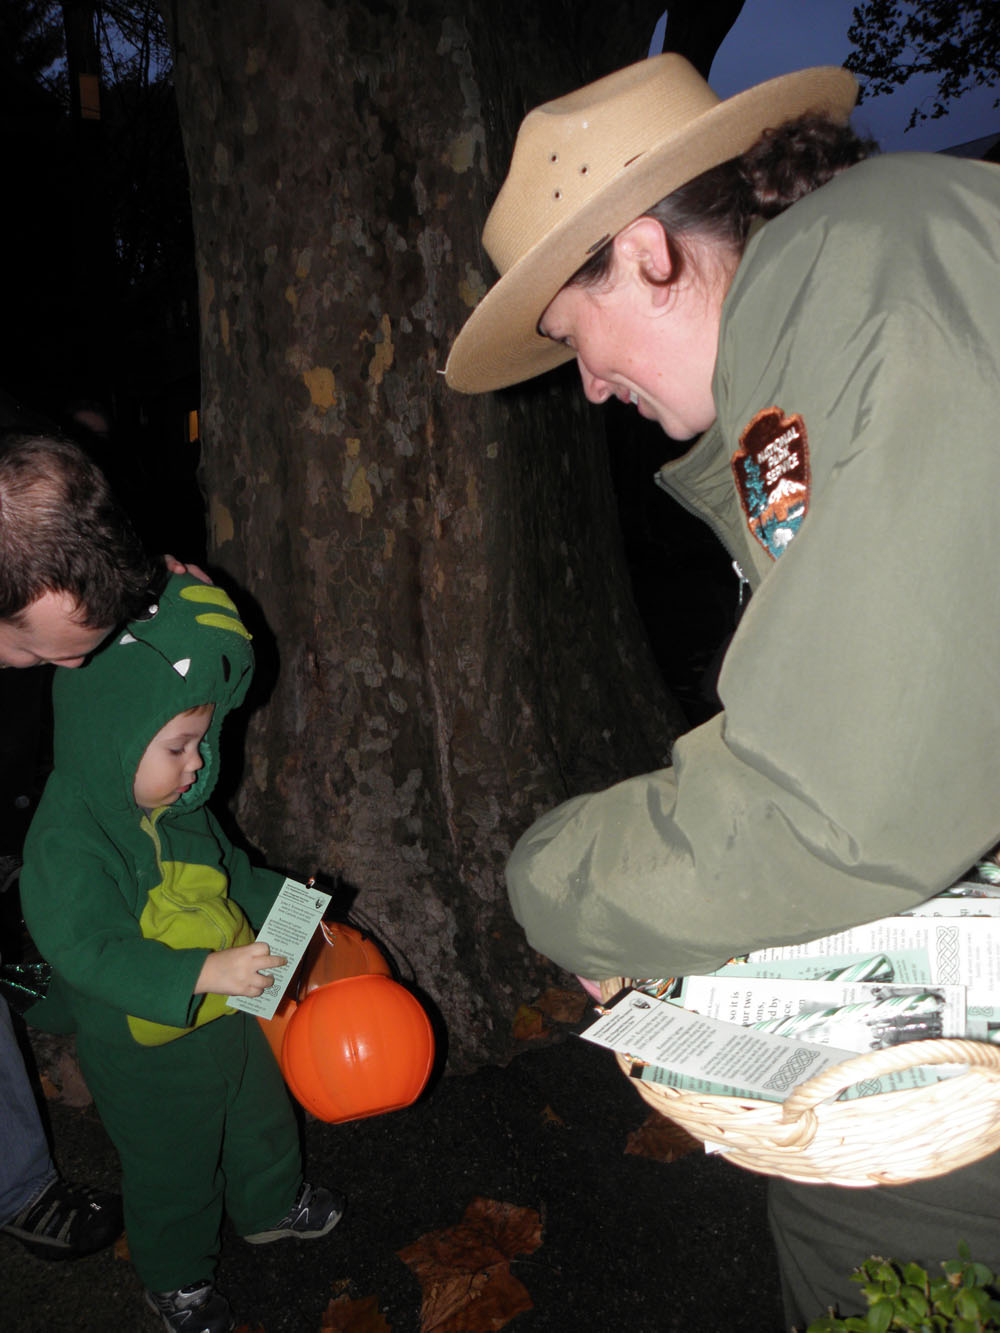 A ranger hands a child dressed as an alligator a Halloween treat.